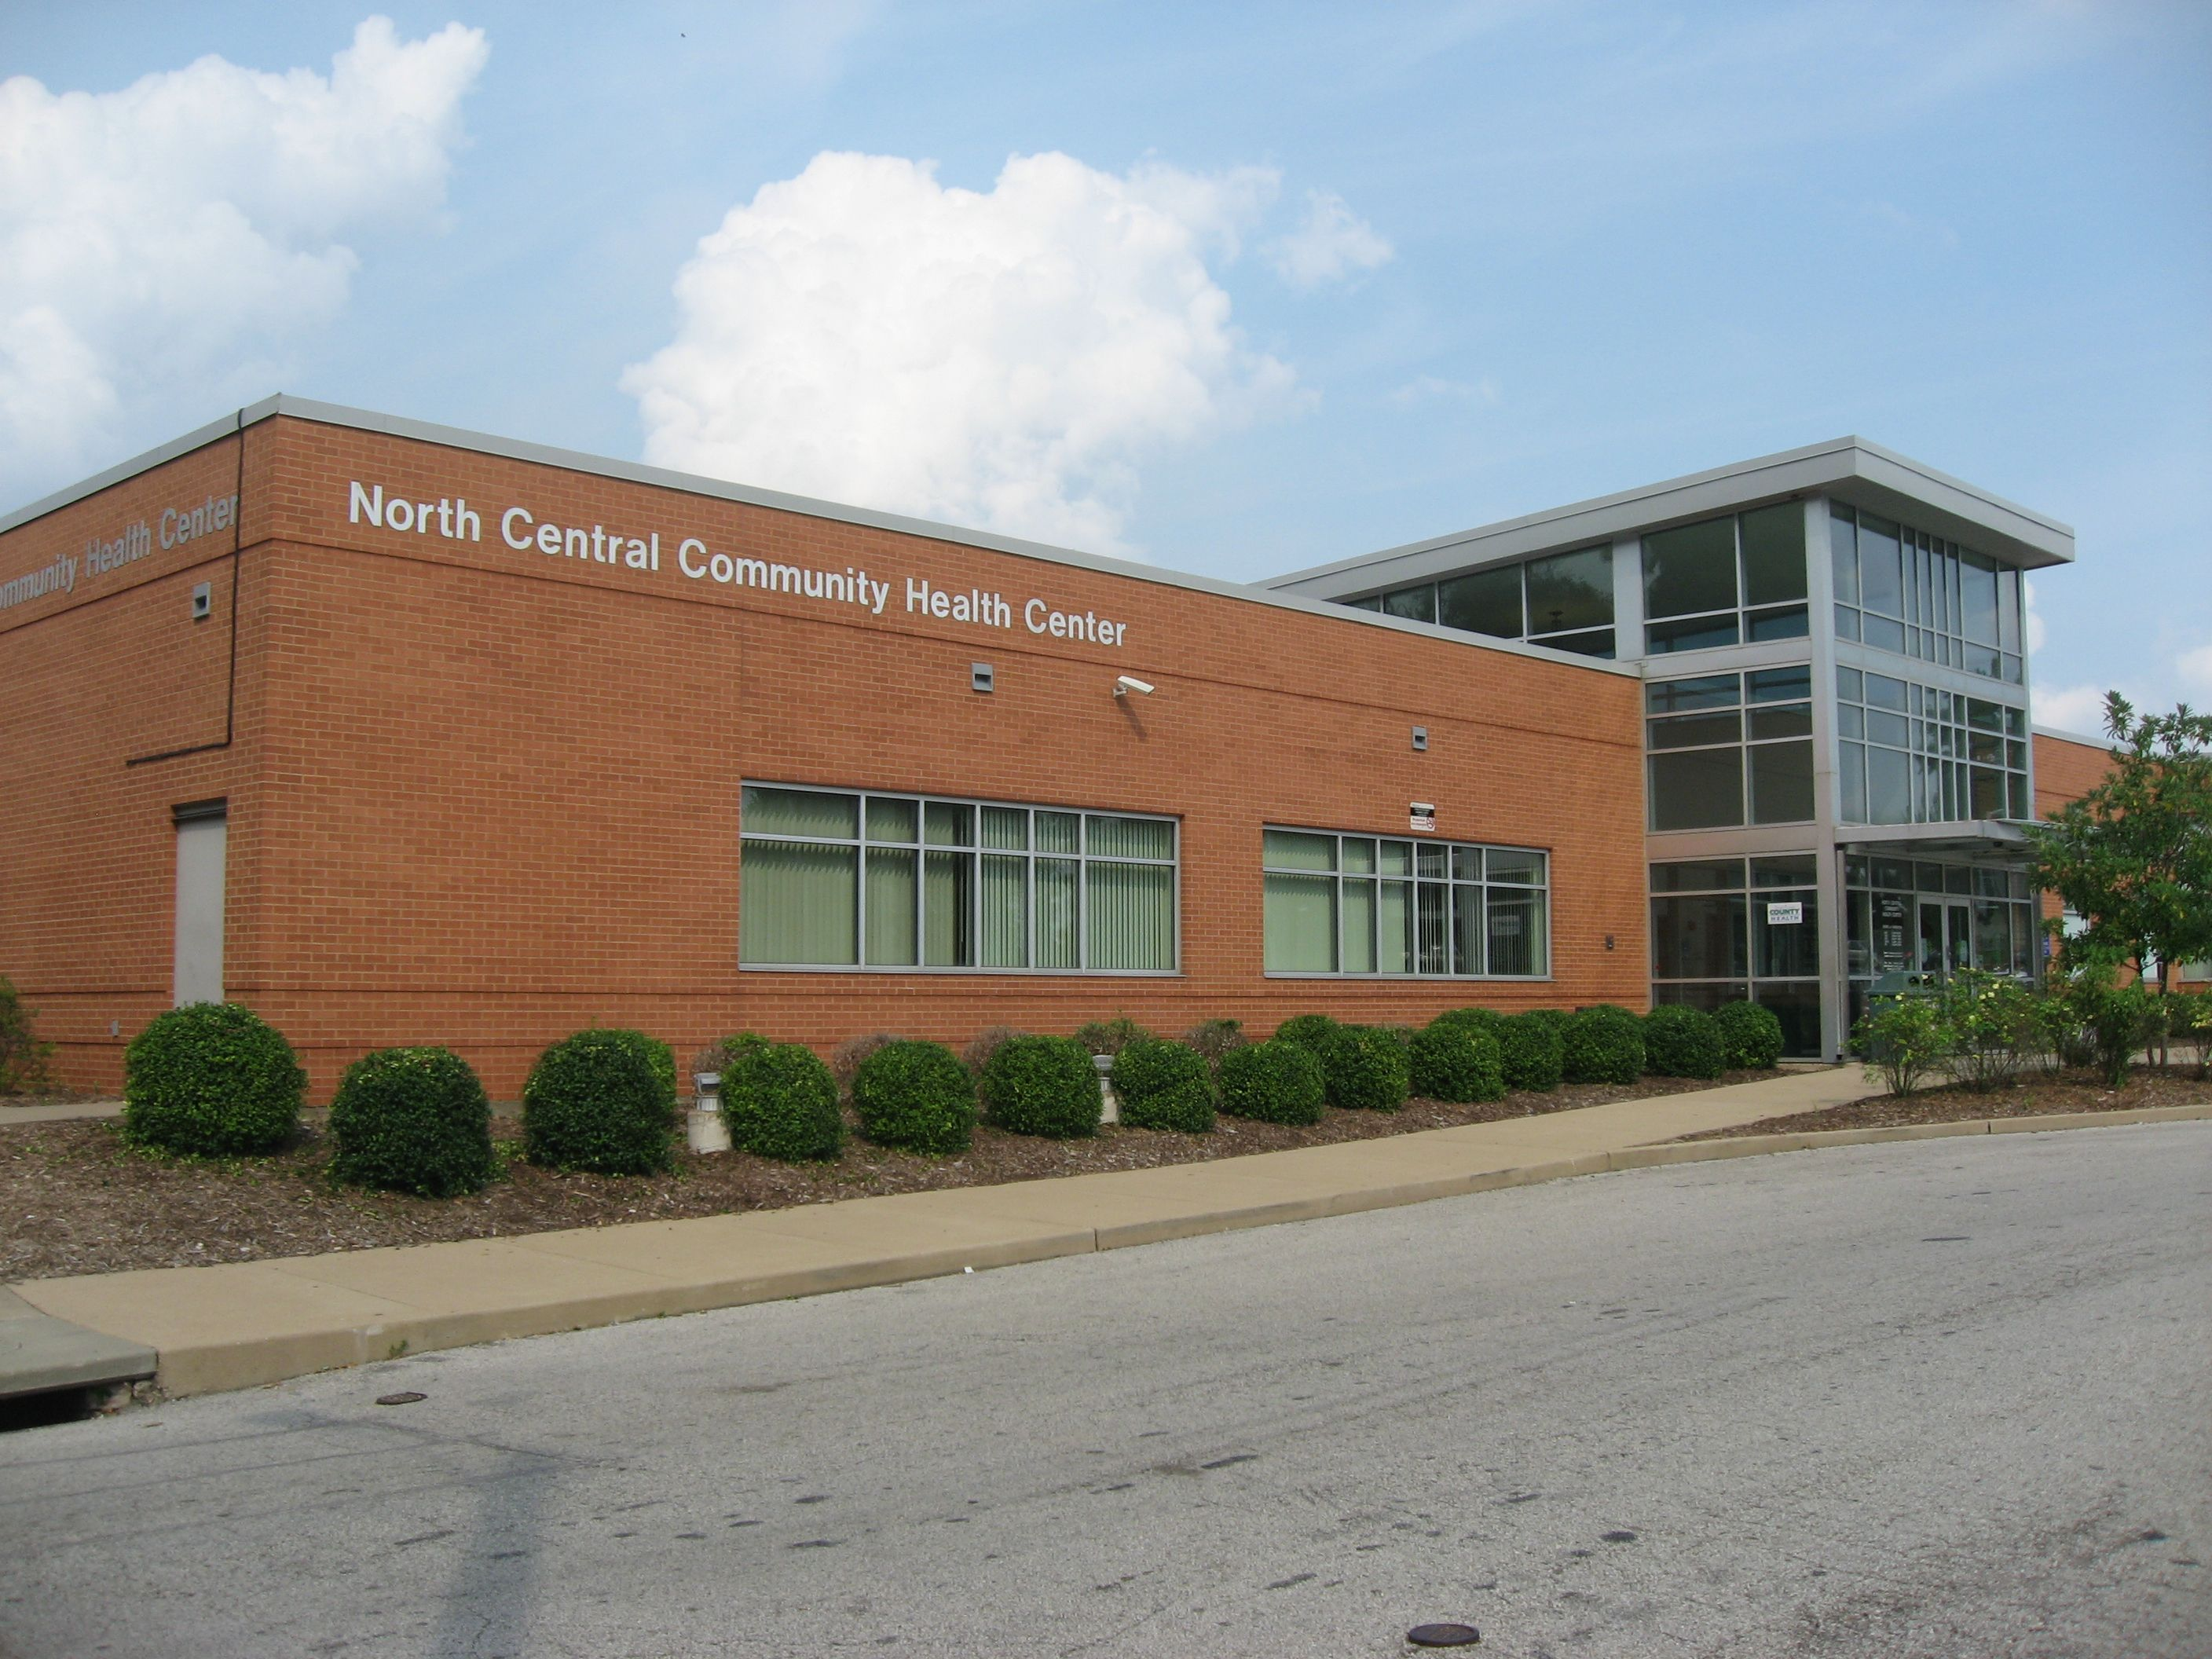 North Central Community Health Center